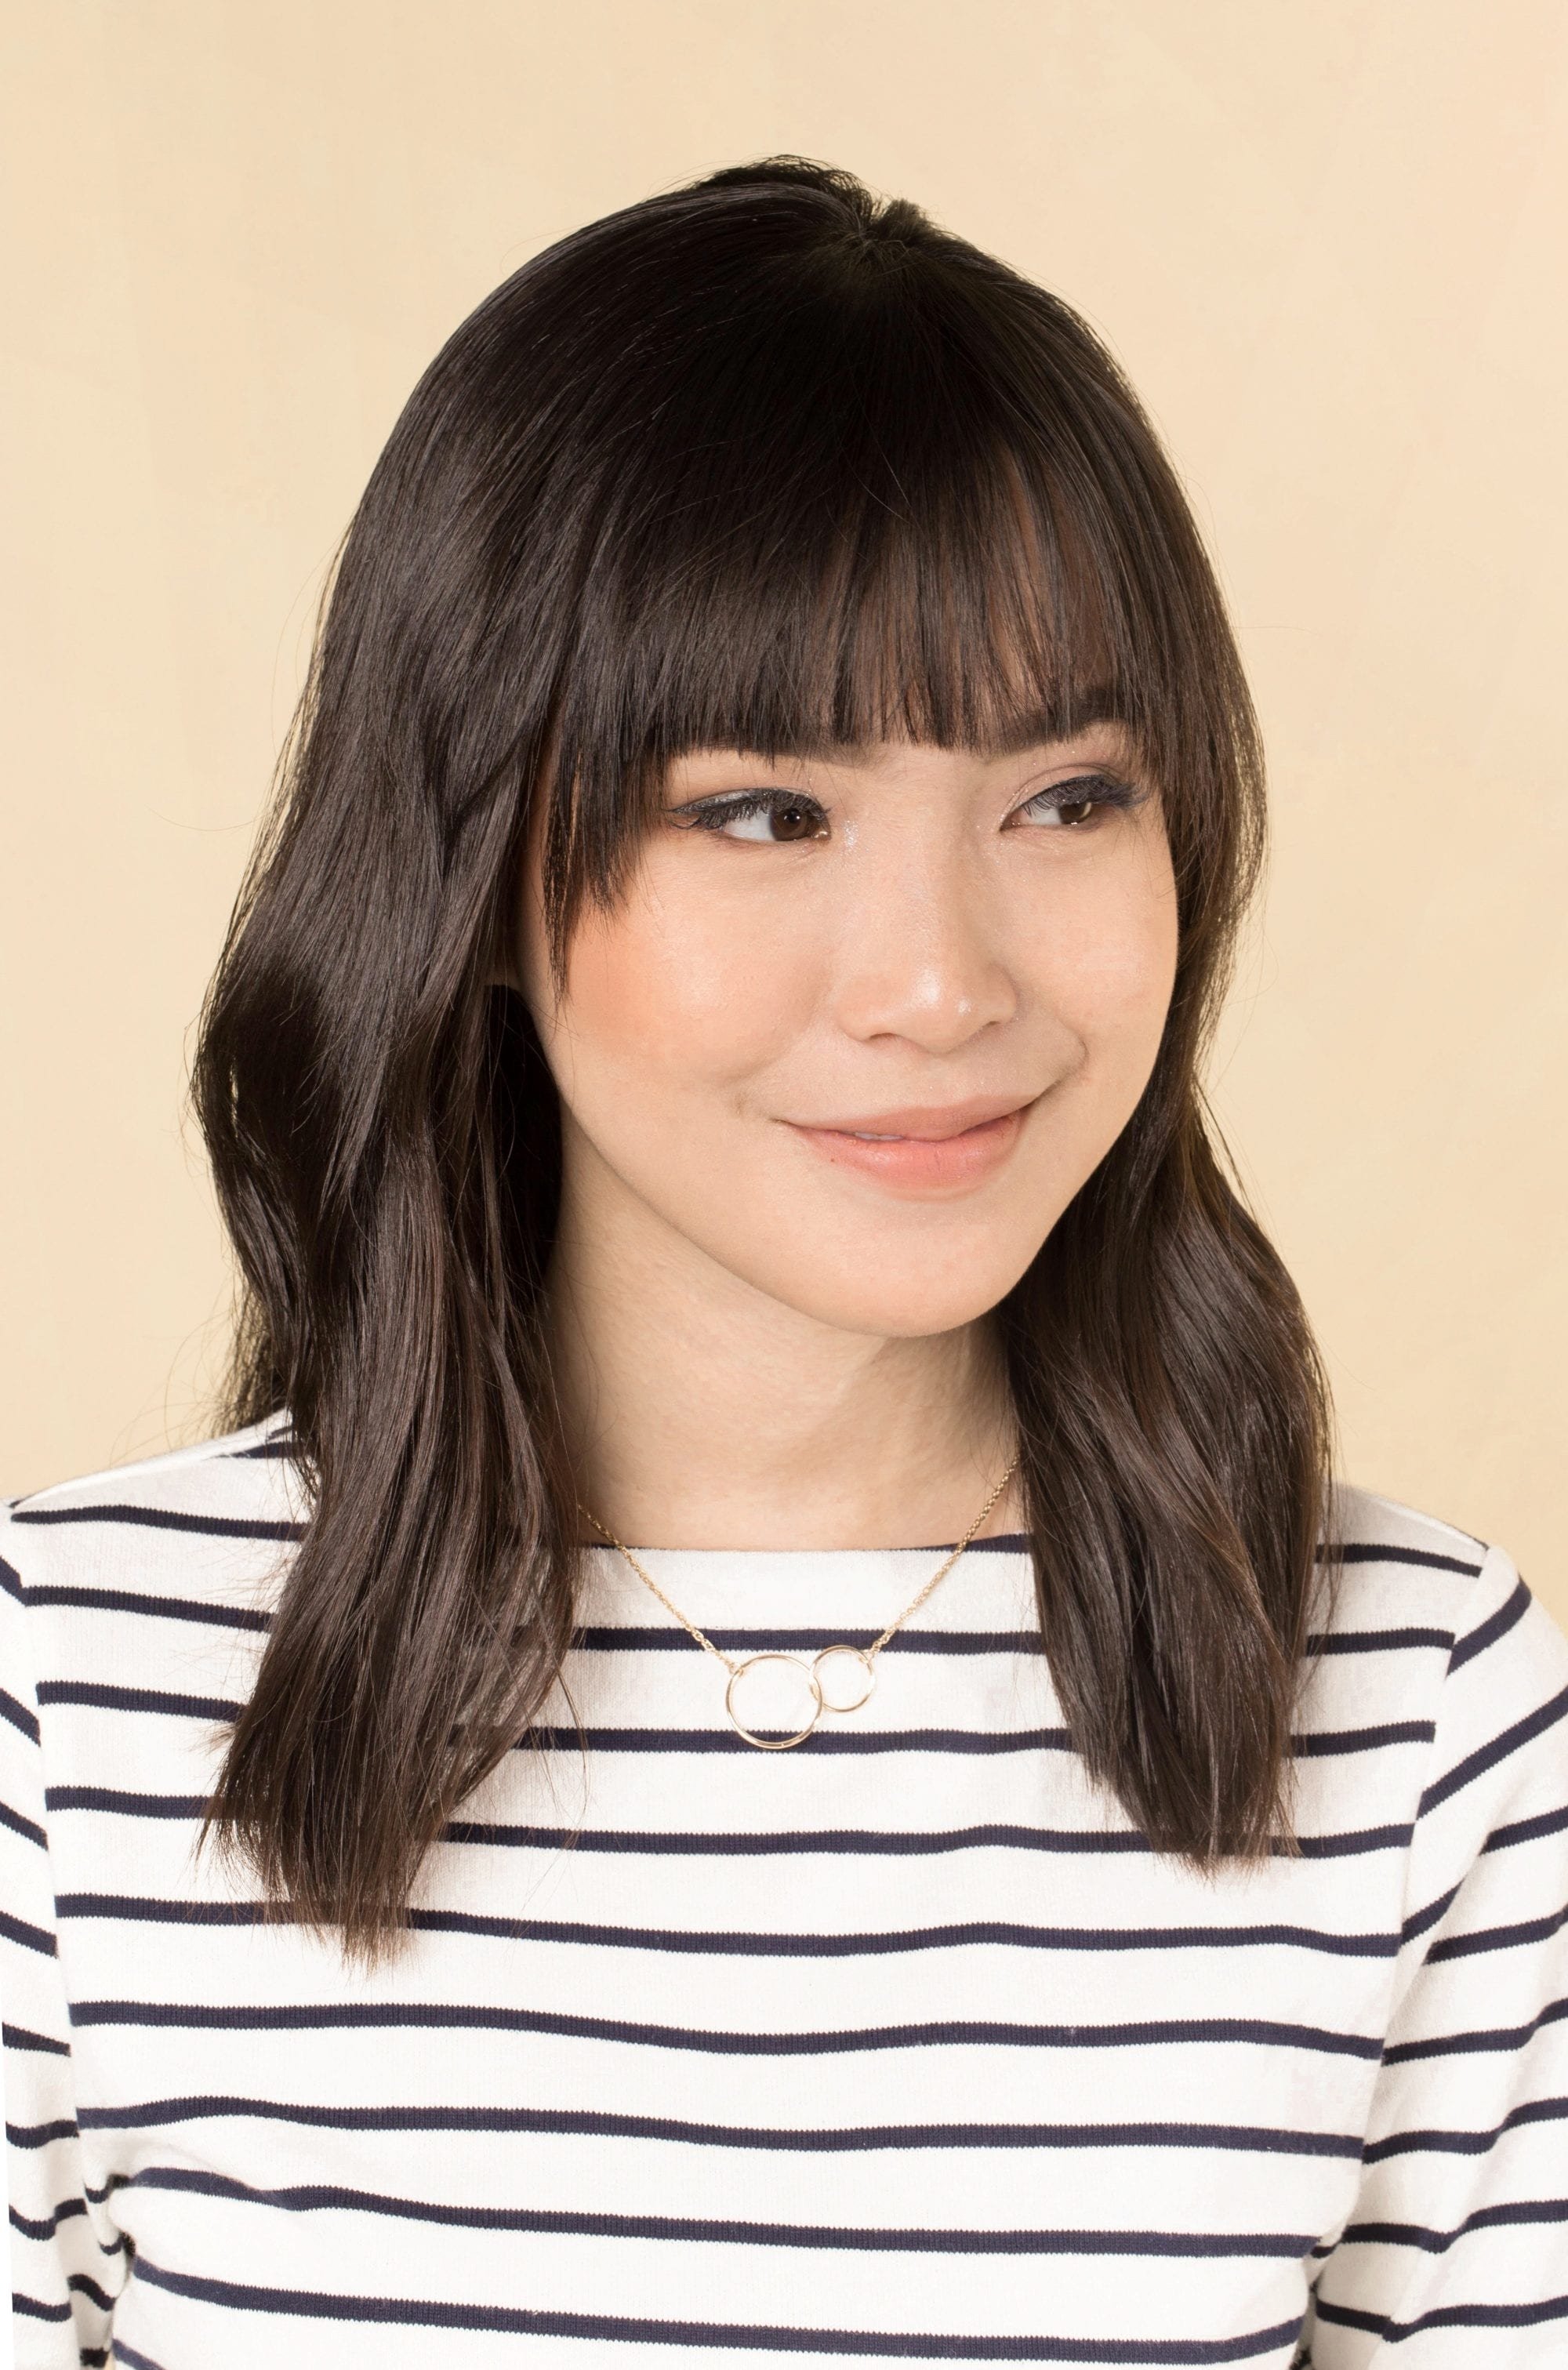 Asian woman with dark shoulder length hair with bangs wearing a striped shirt